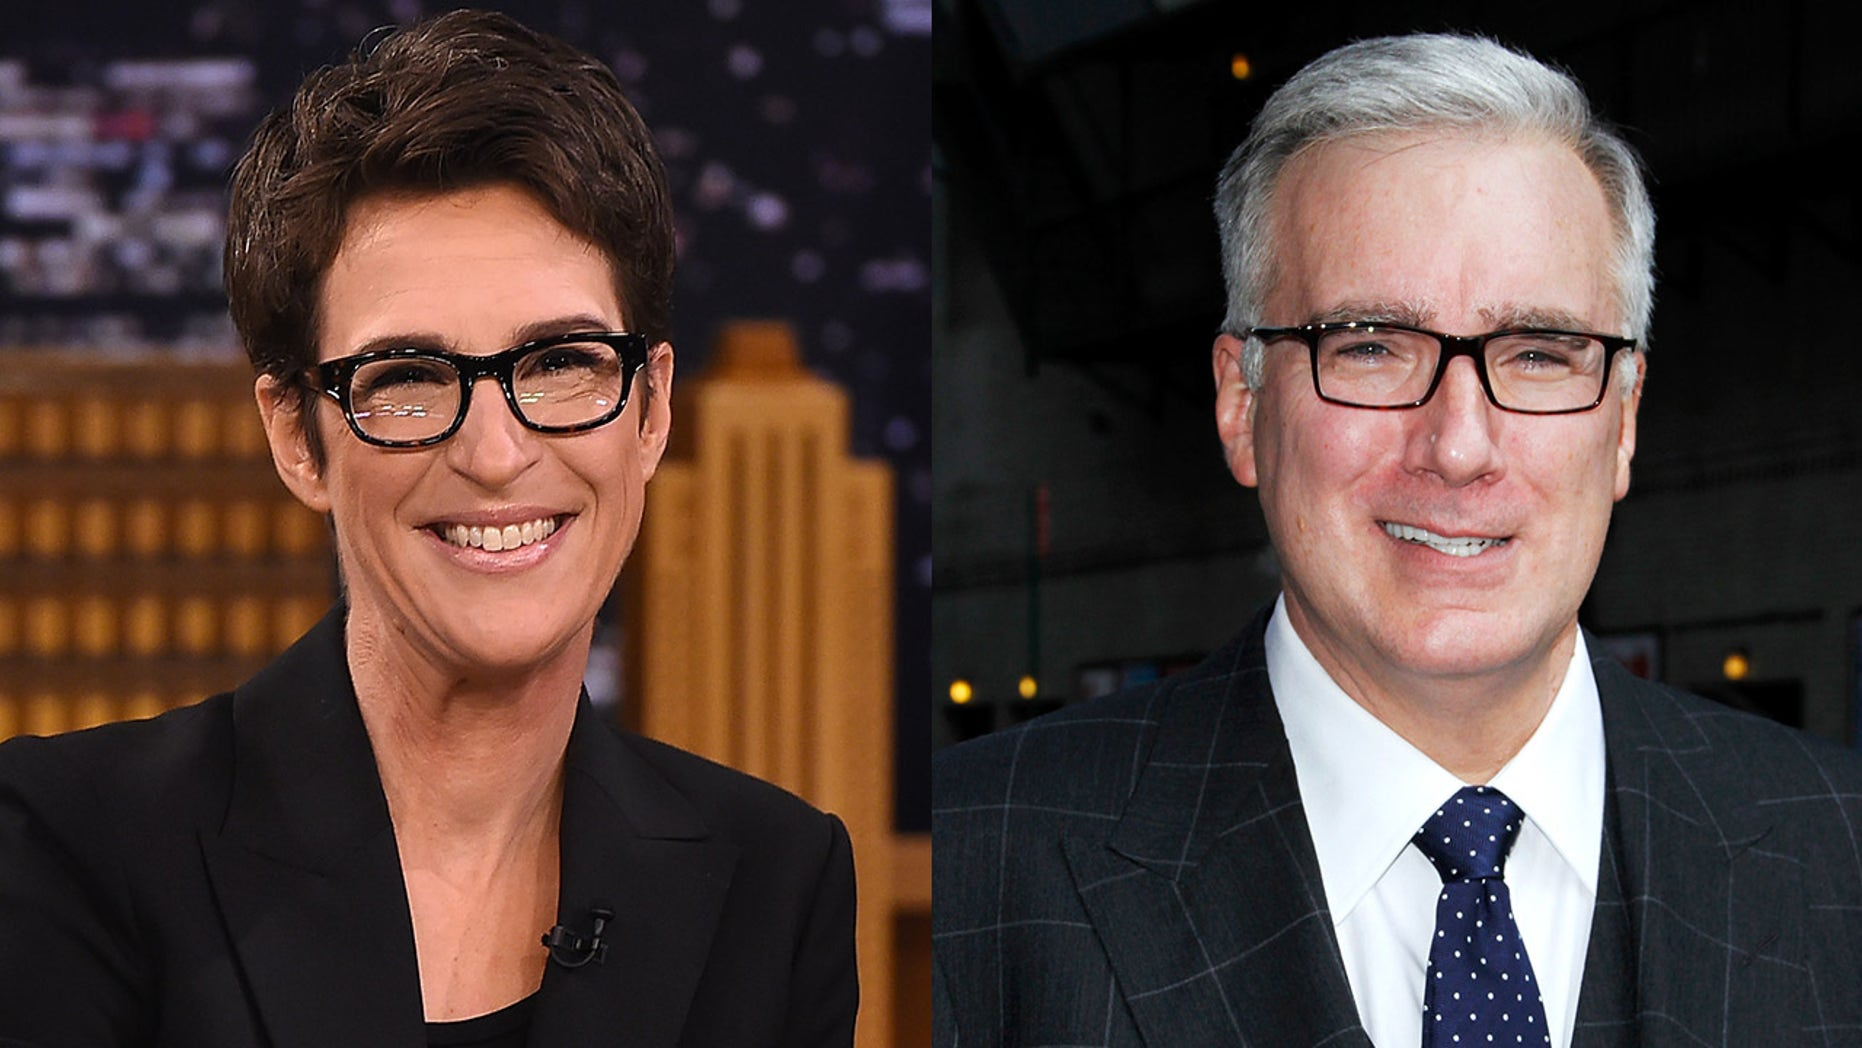 Former MSNBC star Keith Olbermann went after his oldcolleagues Rachel Maddow and Steve Kornacki, who he considered to be ungrateful for aiding their careers.